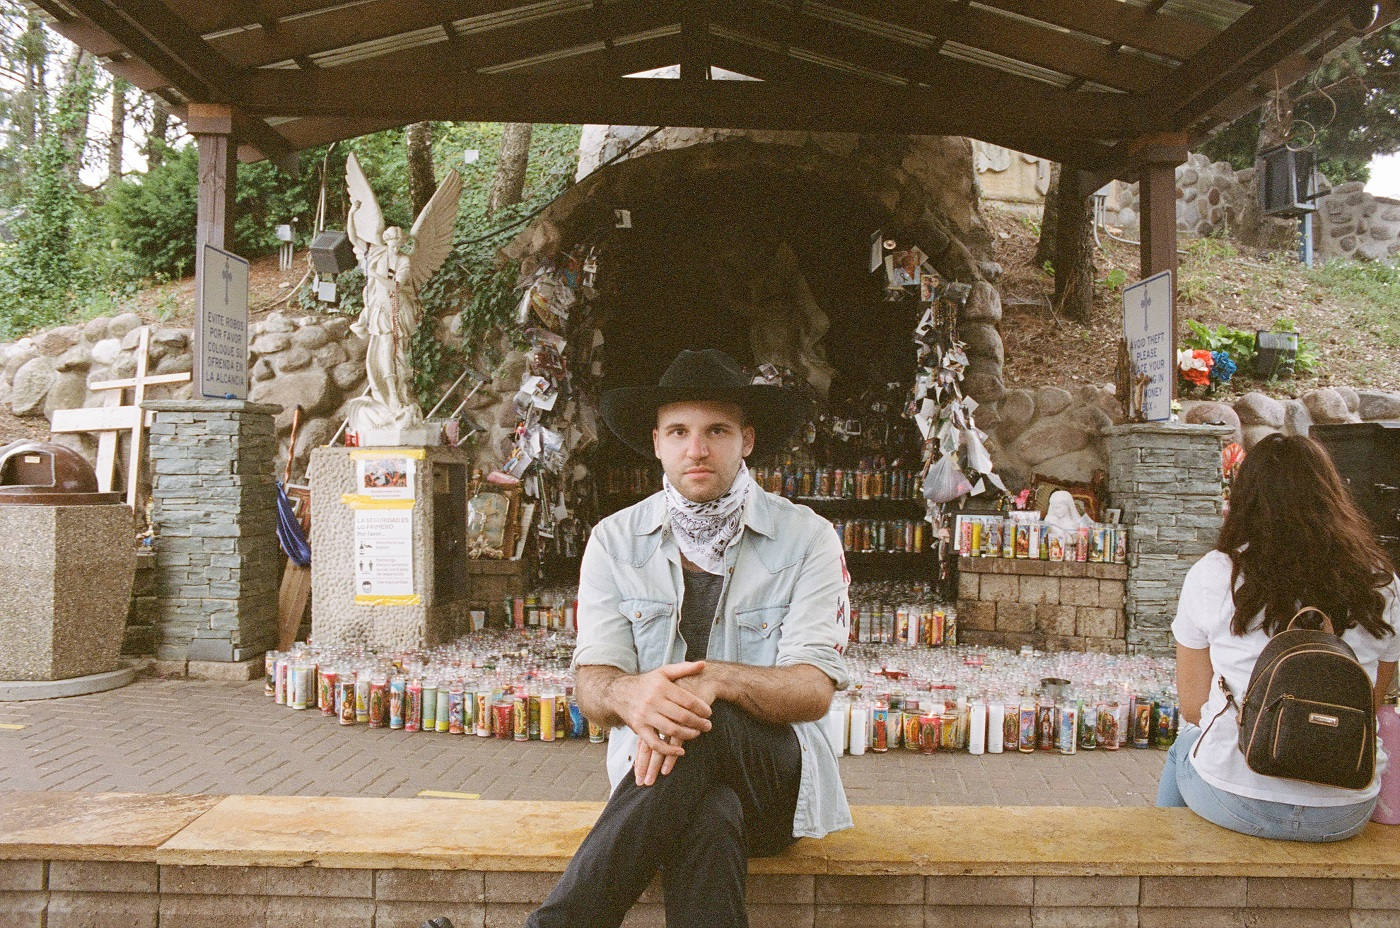 On Sand Like Stardust, Jordan Reyes reframes the myths of the American cowboy and charts a musical journey set to the cycles of rebirth.